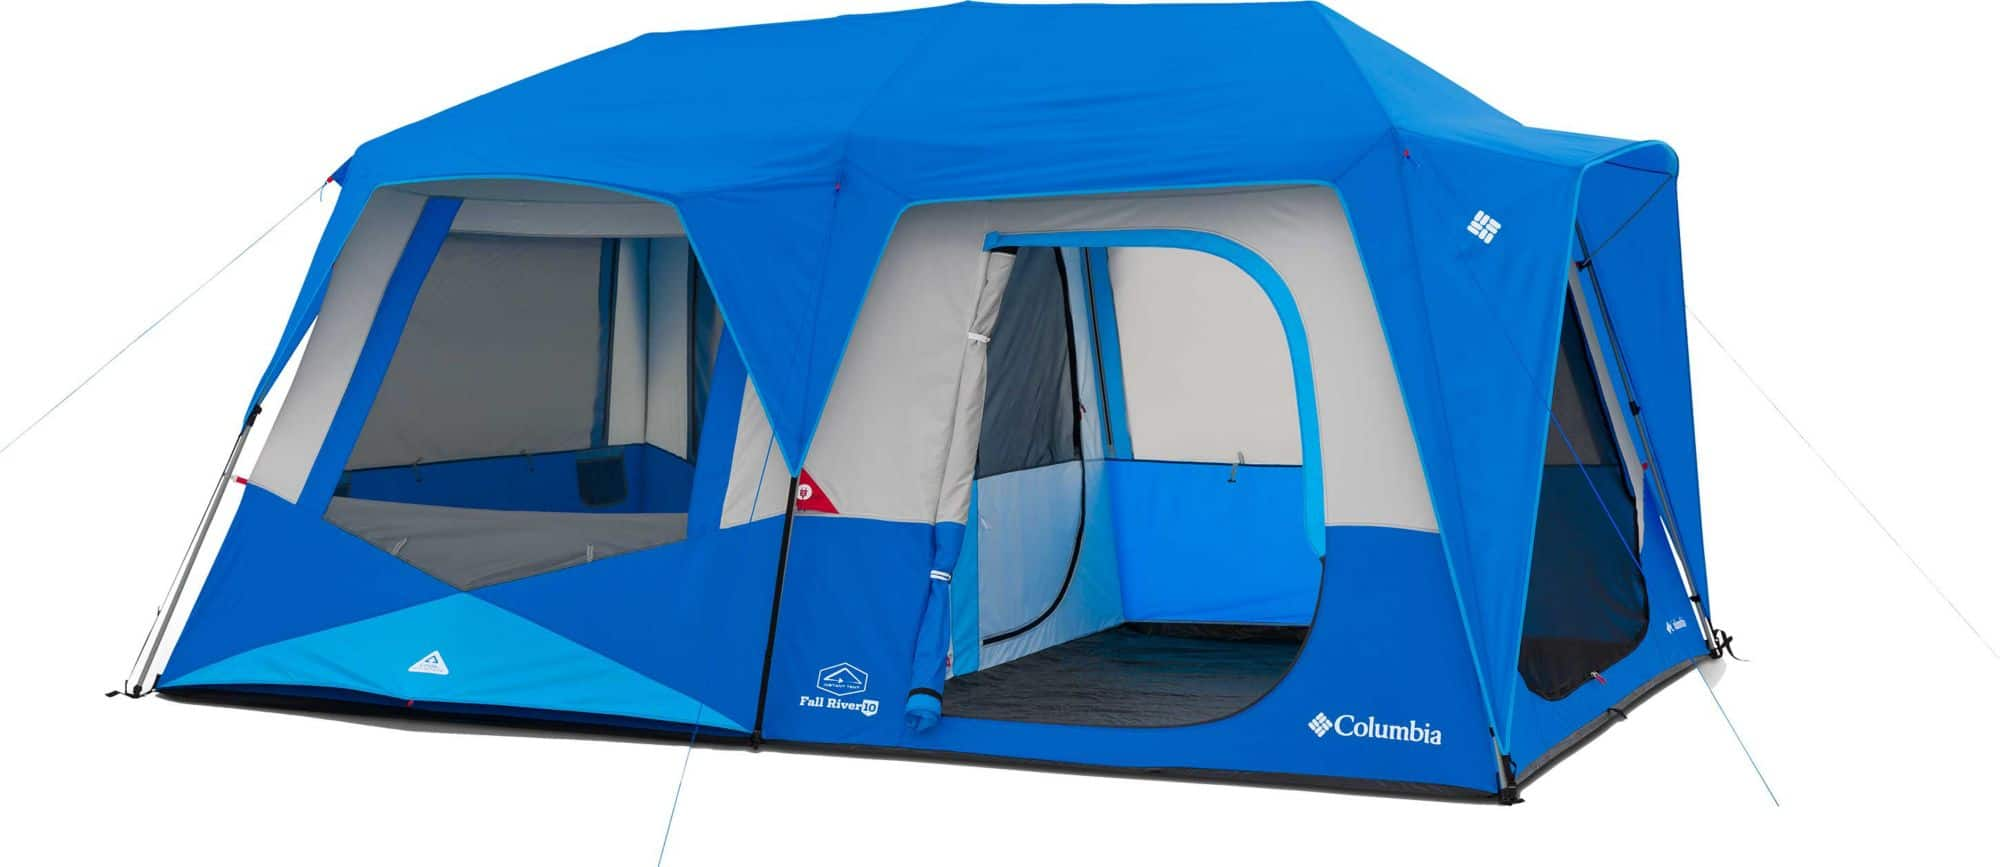 Deal Image  sc 1 st  Slickdeals & Columbia Fall River Instant Tent: 8-Person $140 10-Person ...